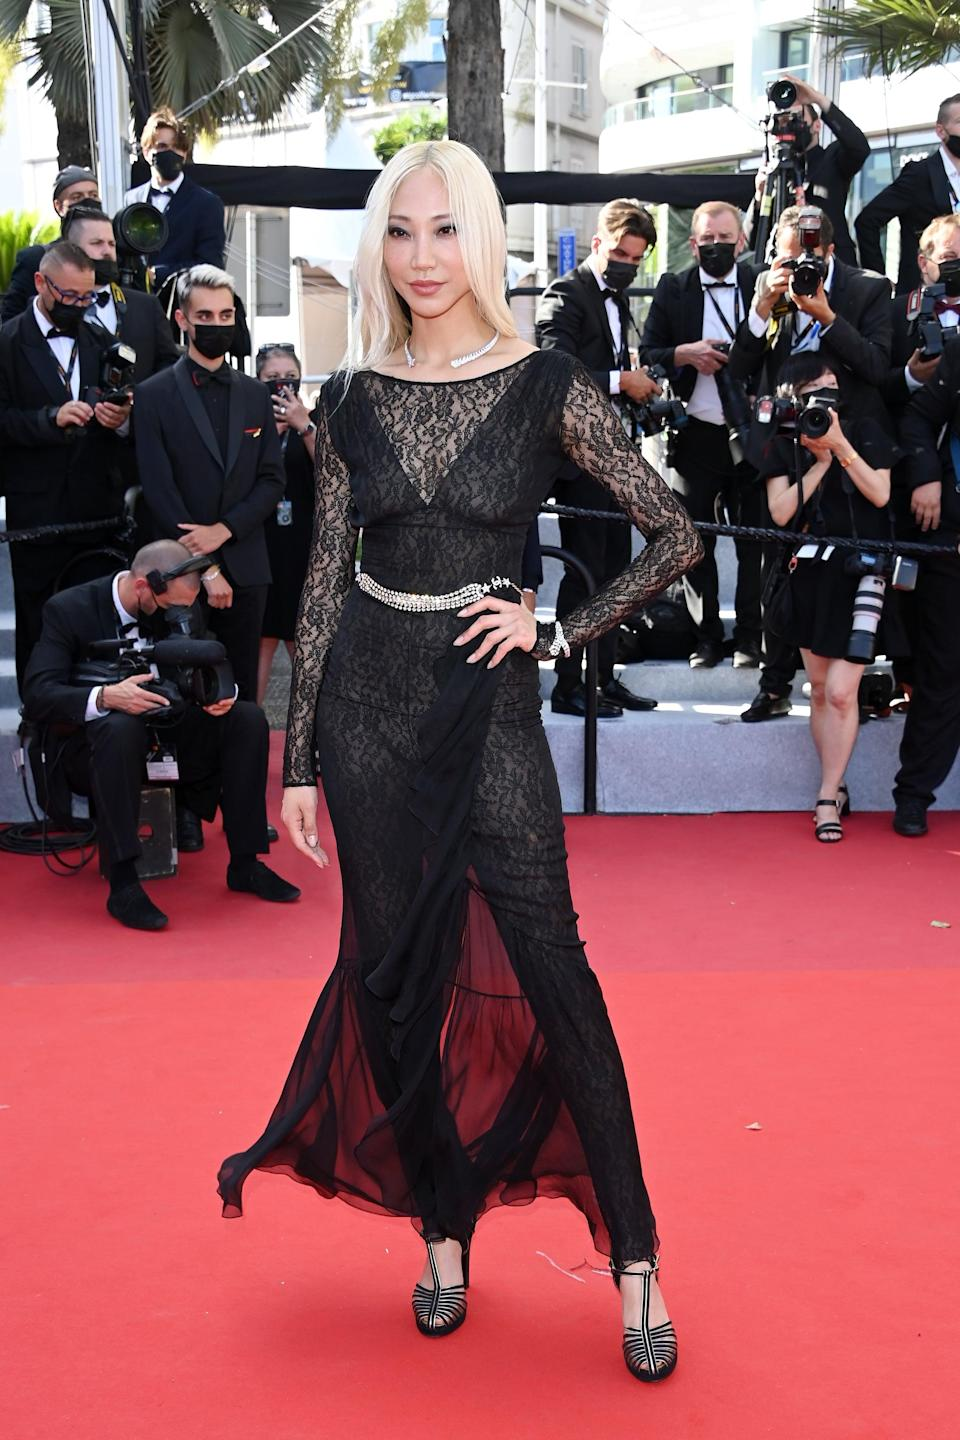 <p>Wearing a black lace outfit.</p>